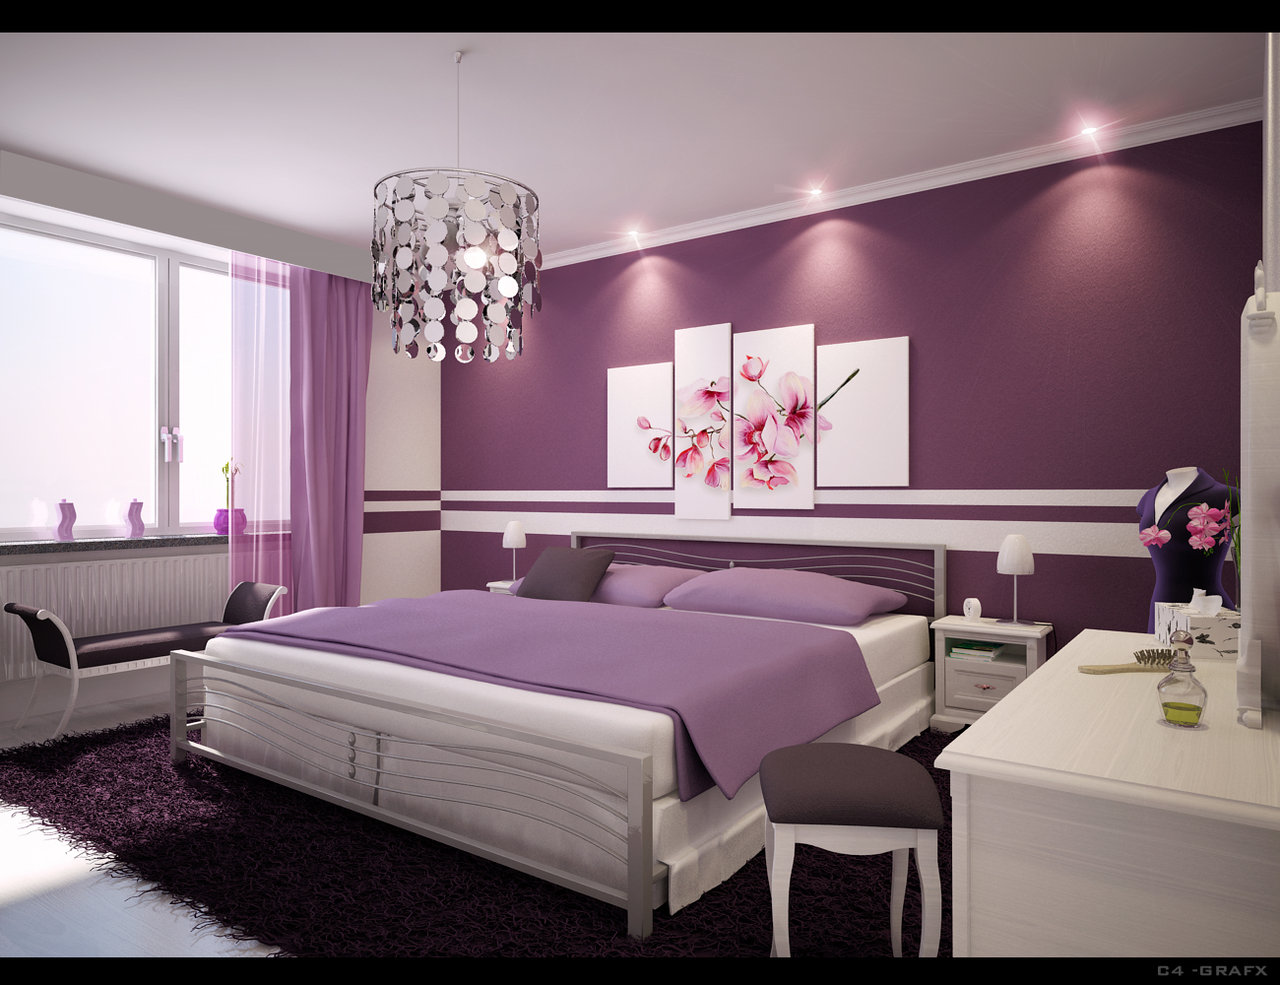 Interior Bed Room Pictures beautiful bedrooms purple feminine bedroom